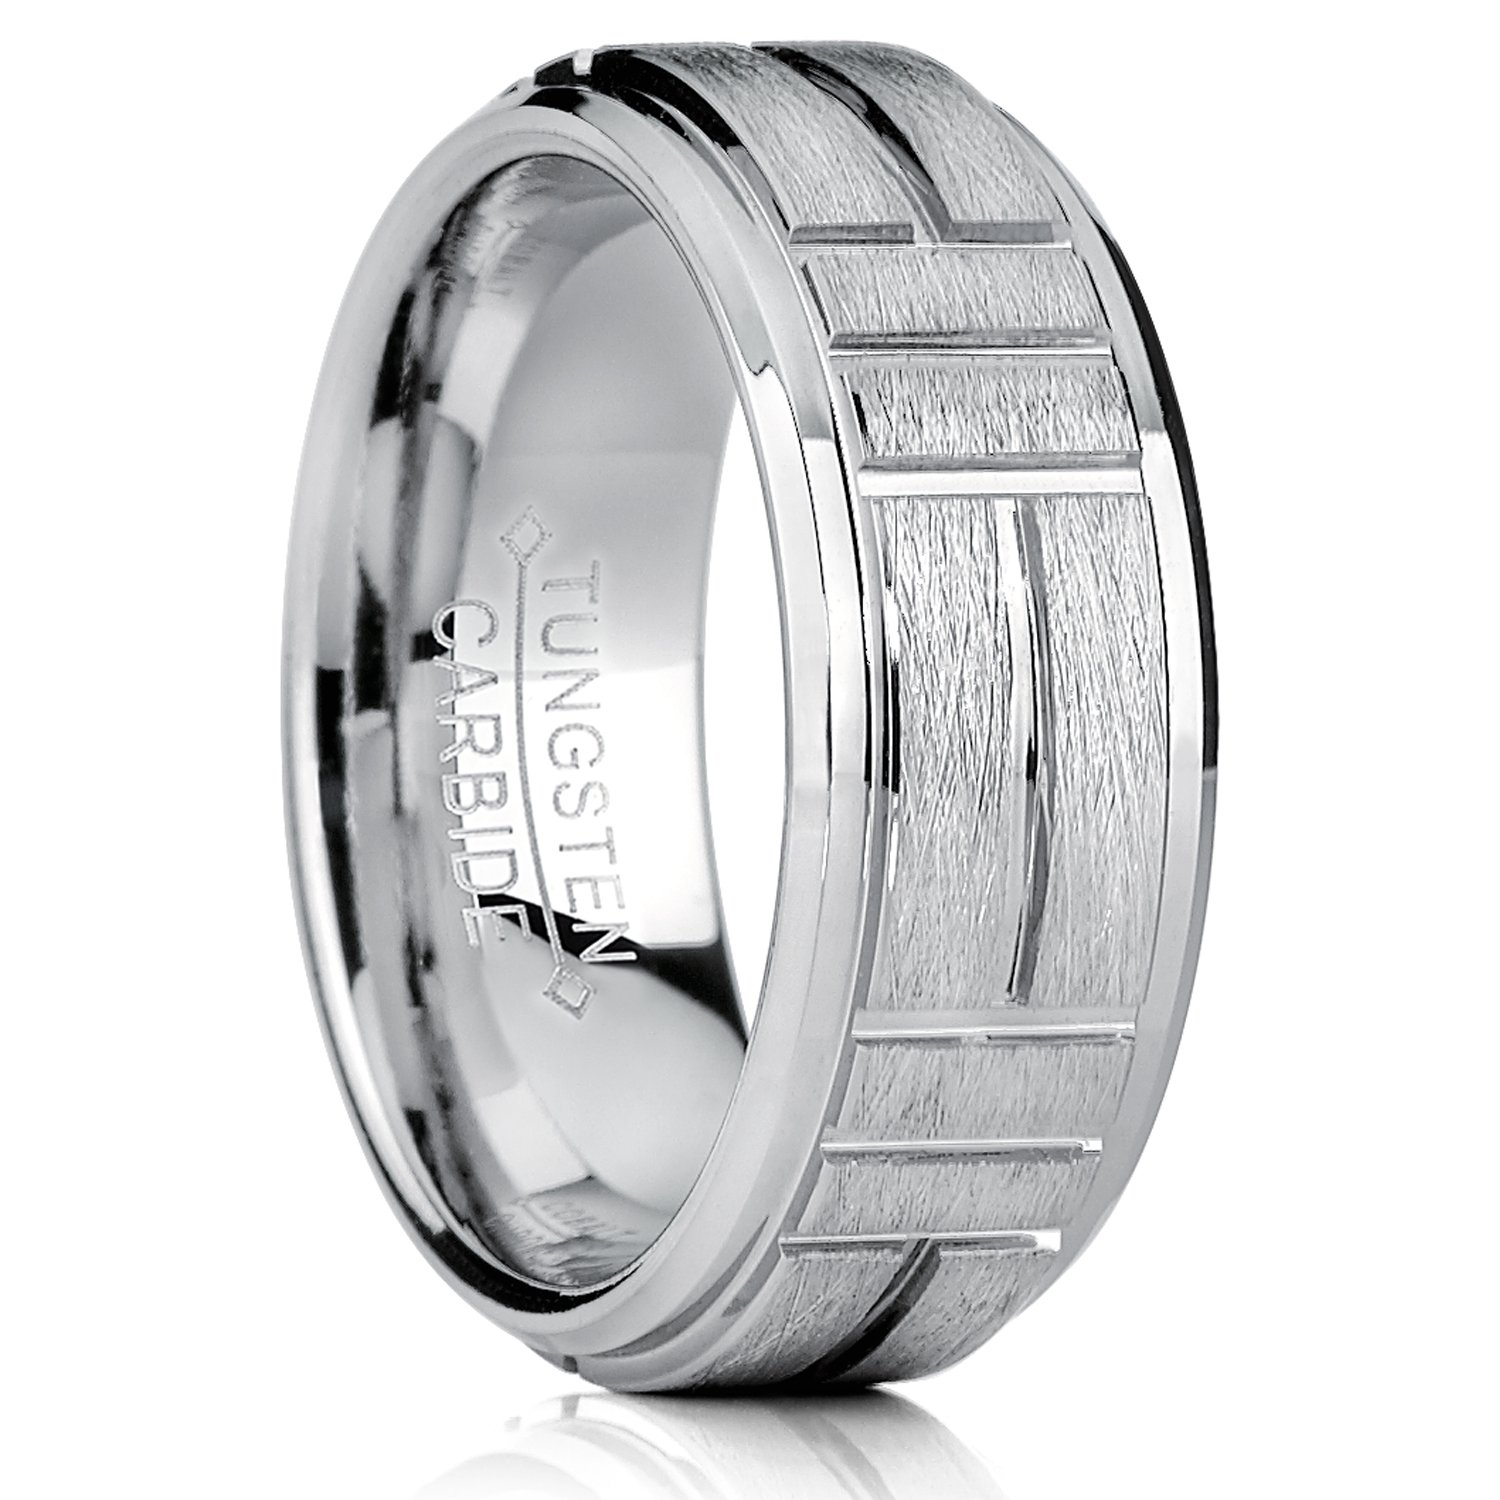 Tungsten Carbide Mens Textured Brushed Grooved Wedding Band Ring Comfort Fit 8mm Metal Masters Co